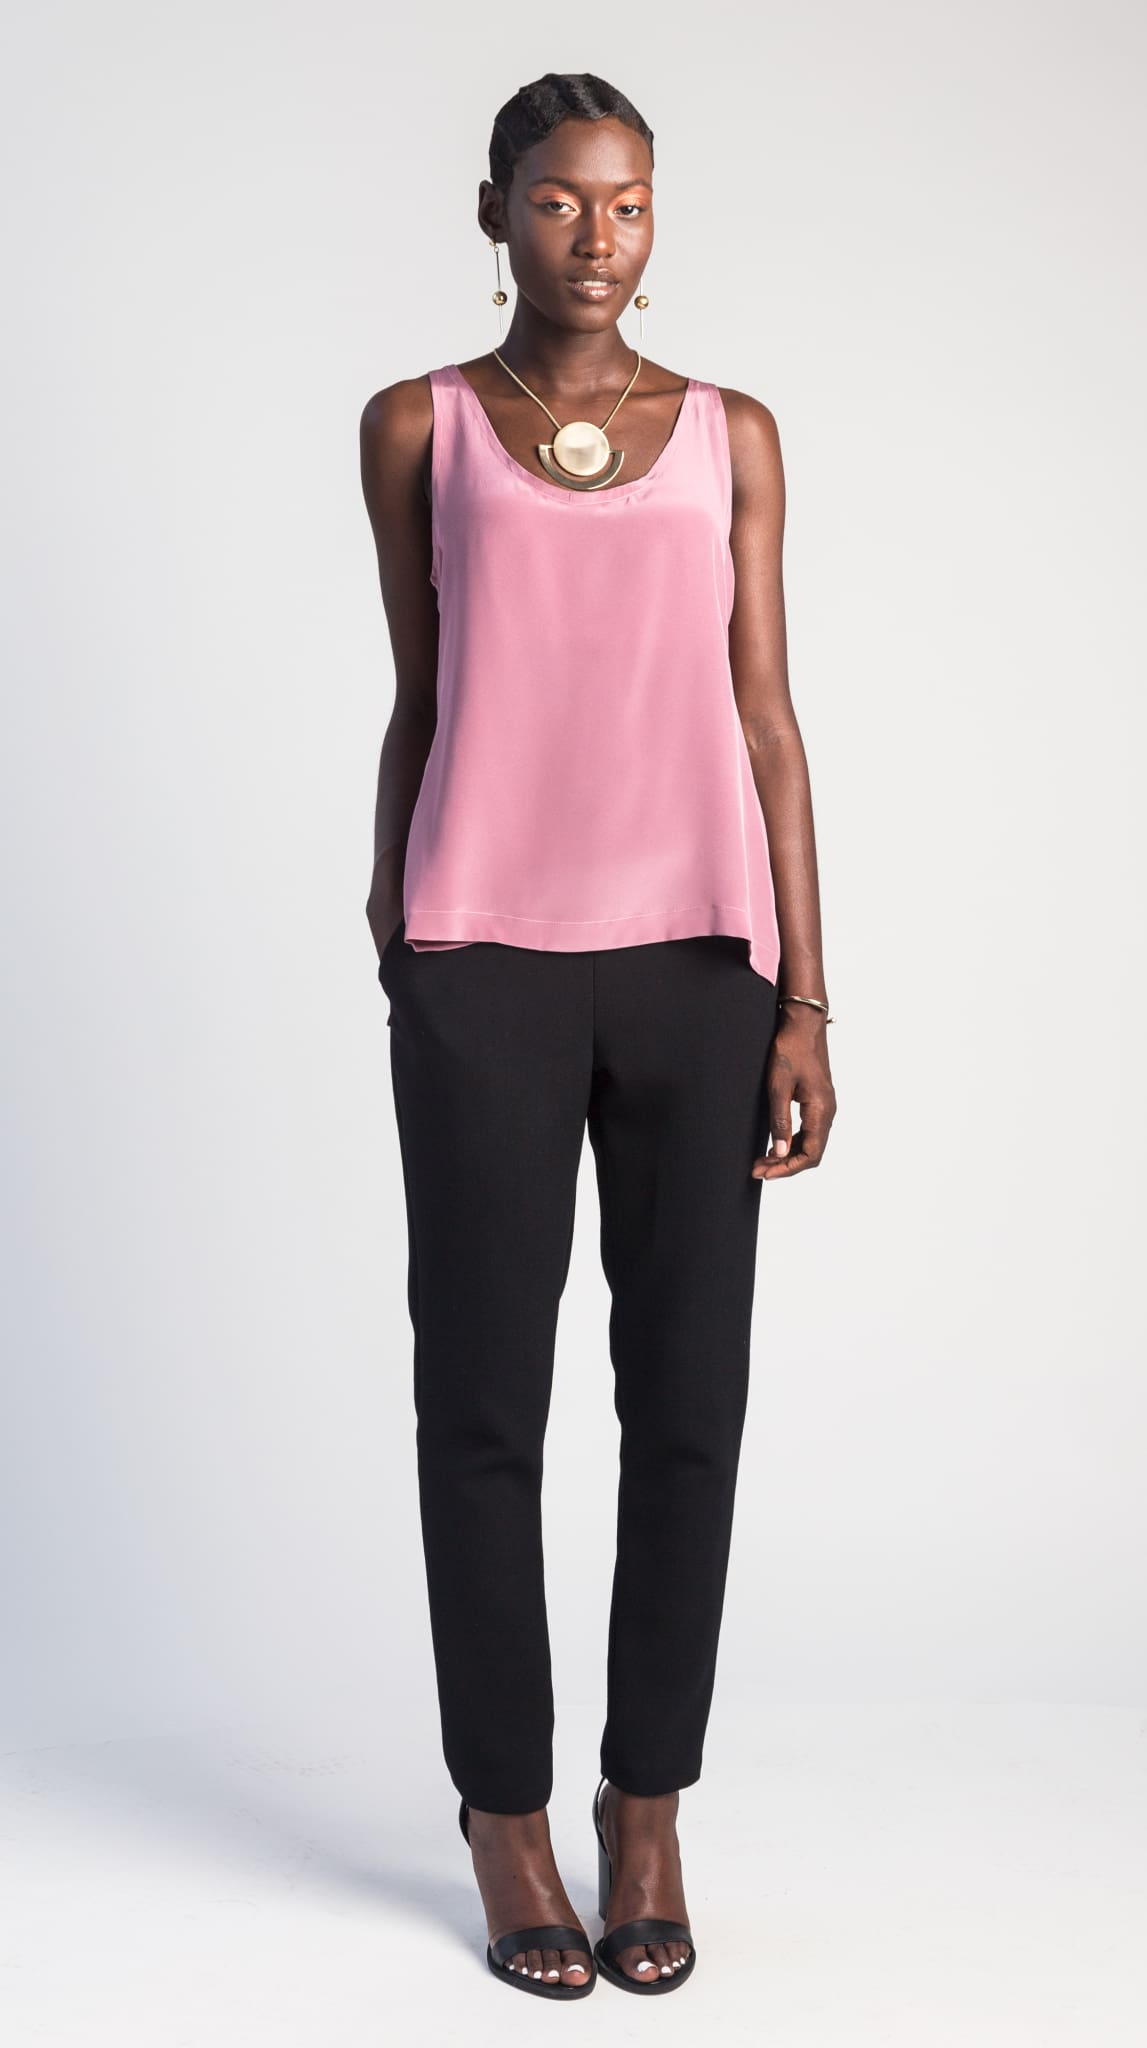 Rose pink Silk Crepe de Chine classic, simple tank top by Chicago independent fashion designer Masha Titievsky of the brand VARYFORM. Sustainable fashion made on demand in the USA.